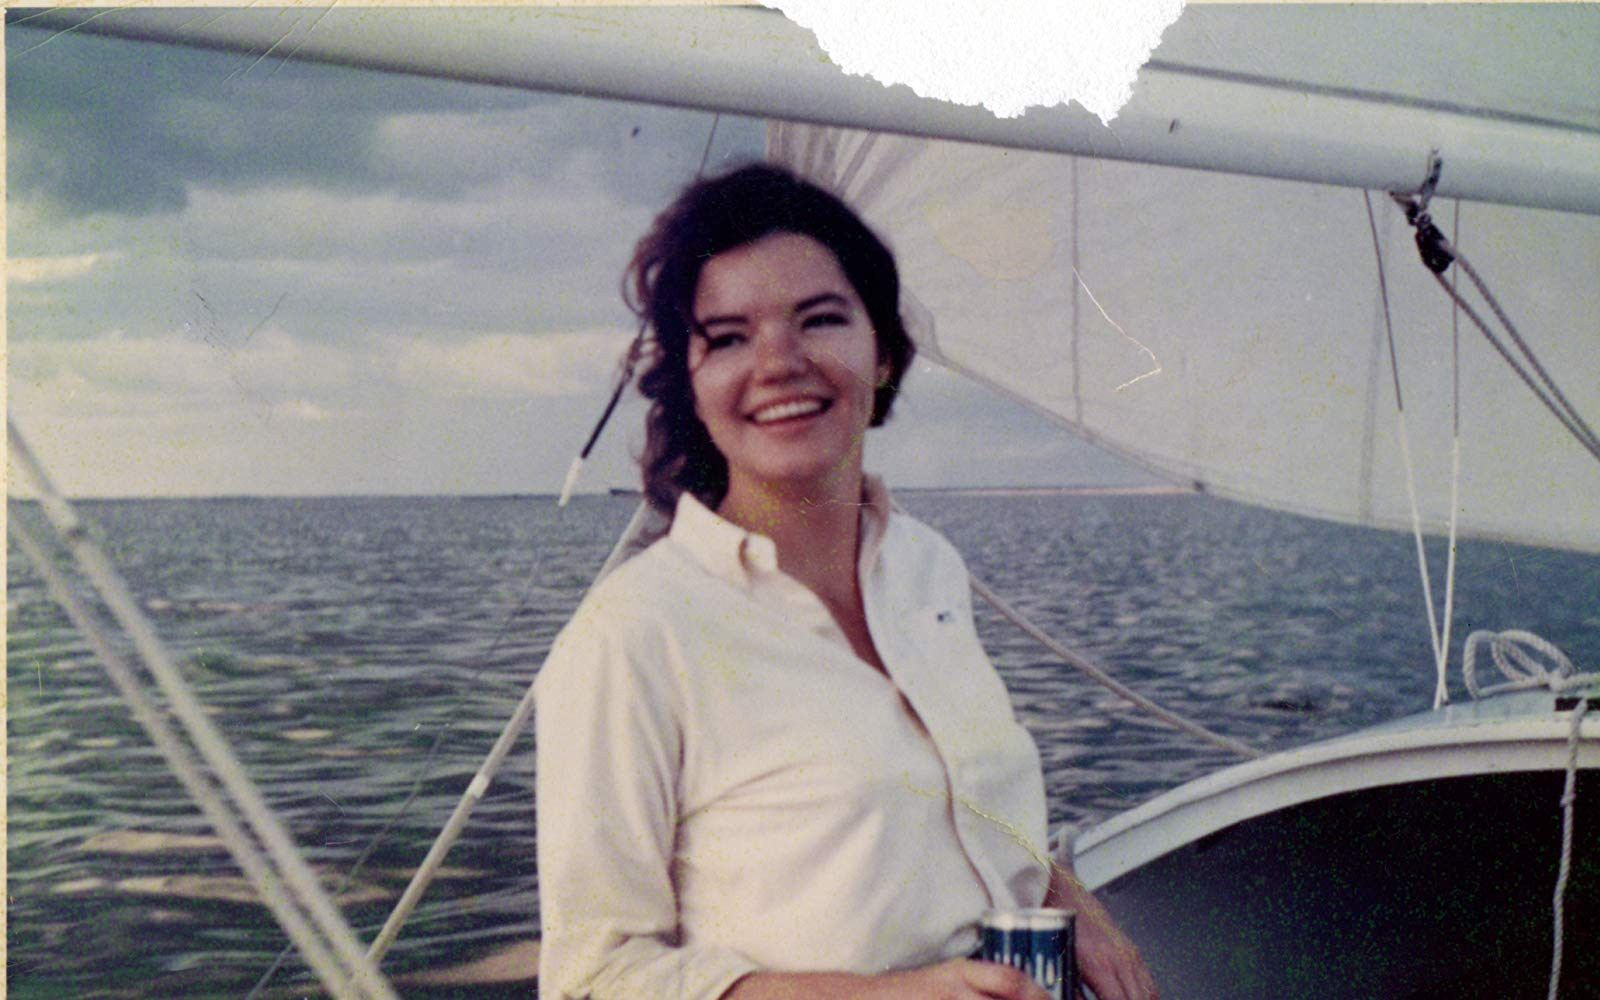 Molly Ivins in Raise Hell: The Life And Times Of Molly Ivins